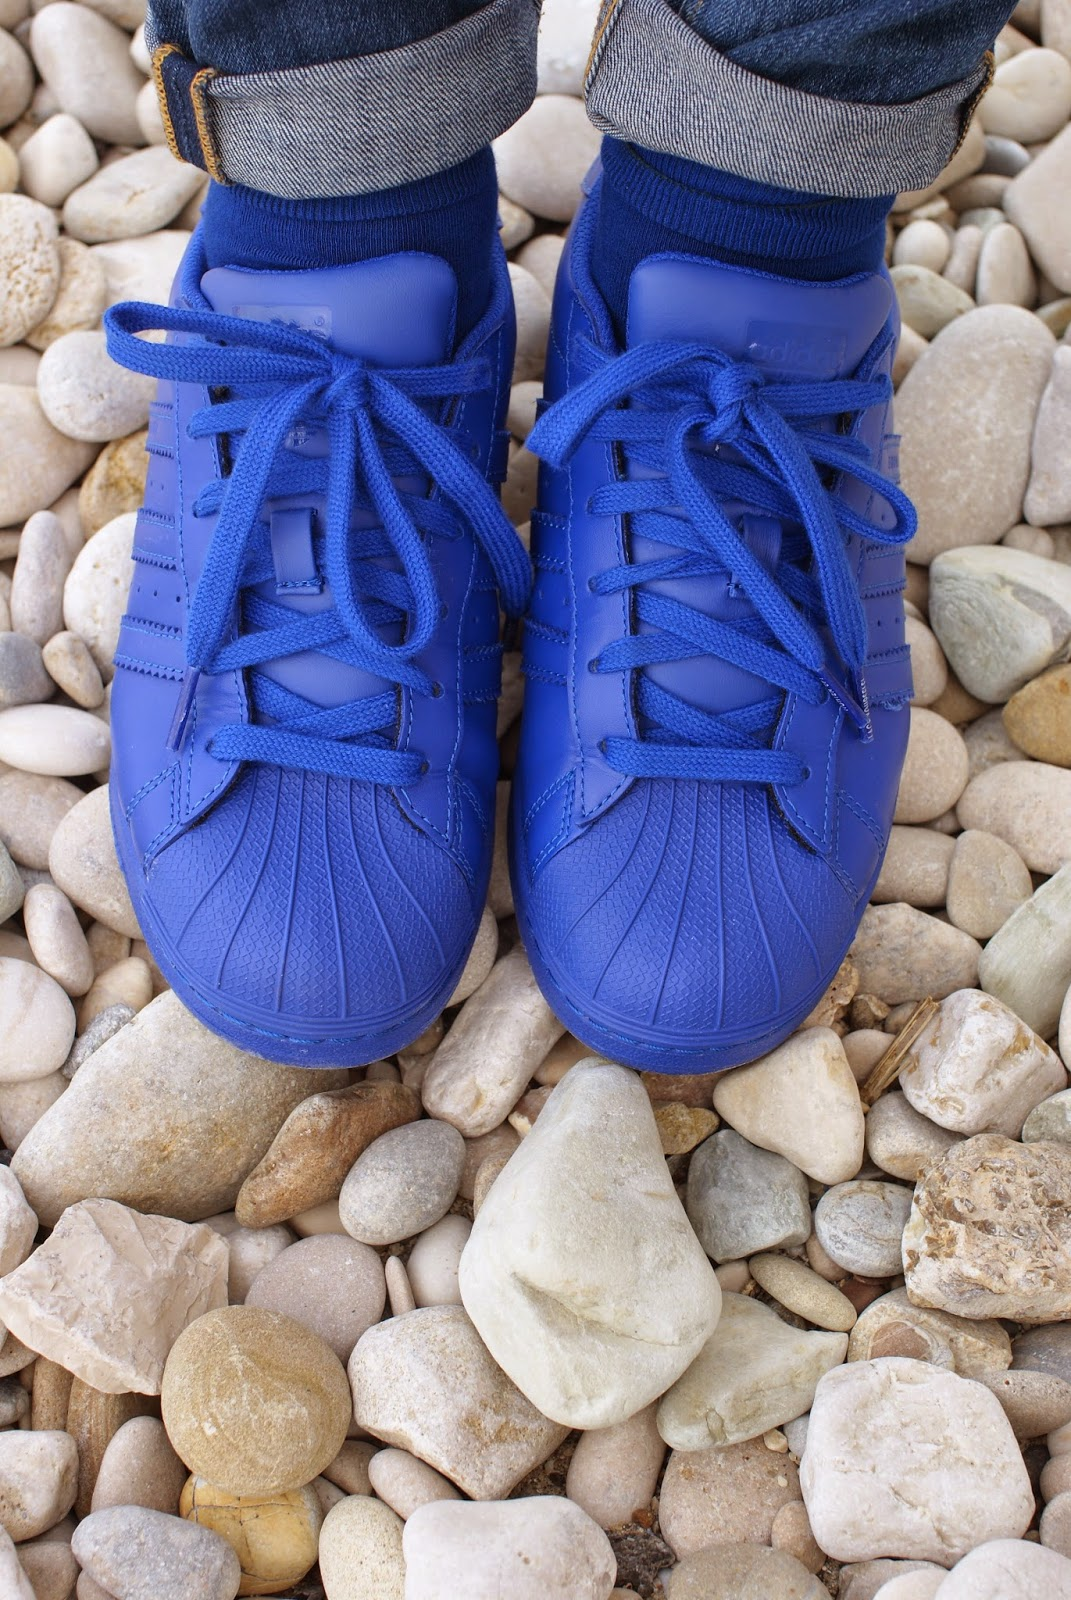 adidas supercolor sneakers in bold blue, adidas scarpe da donna, where to find adidas supercolor, Fashion and Cookies, shop supercolor adidas, fashion blogger